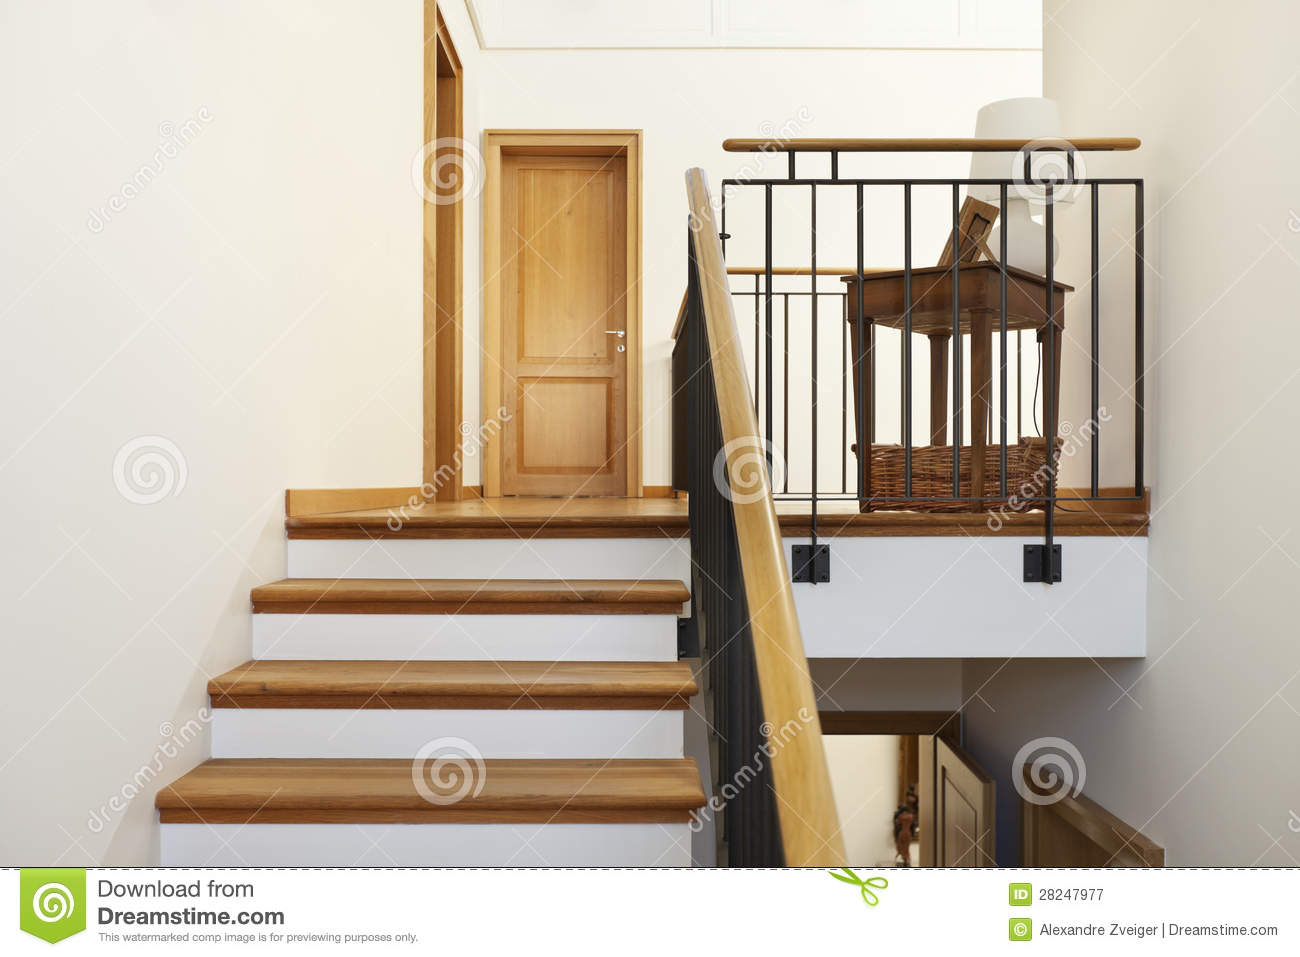 escalier int rieur et en bois image stock image 28247977. Black Bedroom Furniture Sets. Home Design Ideas